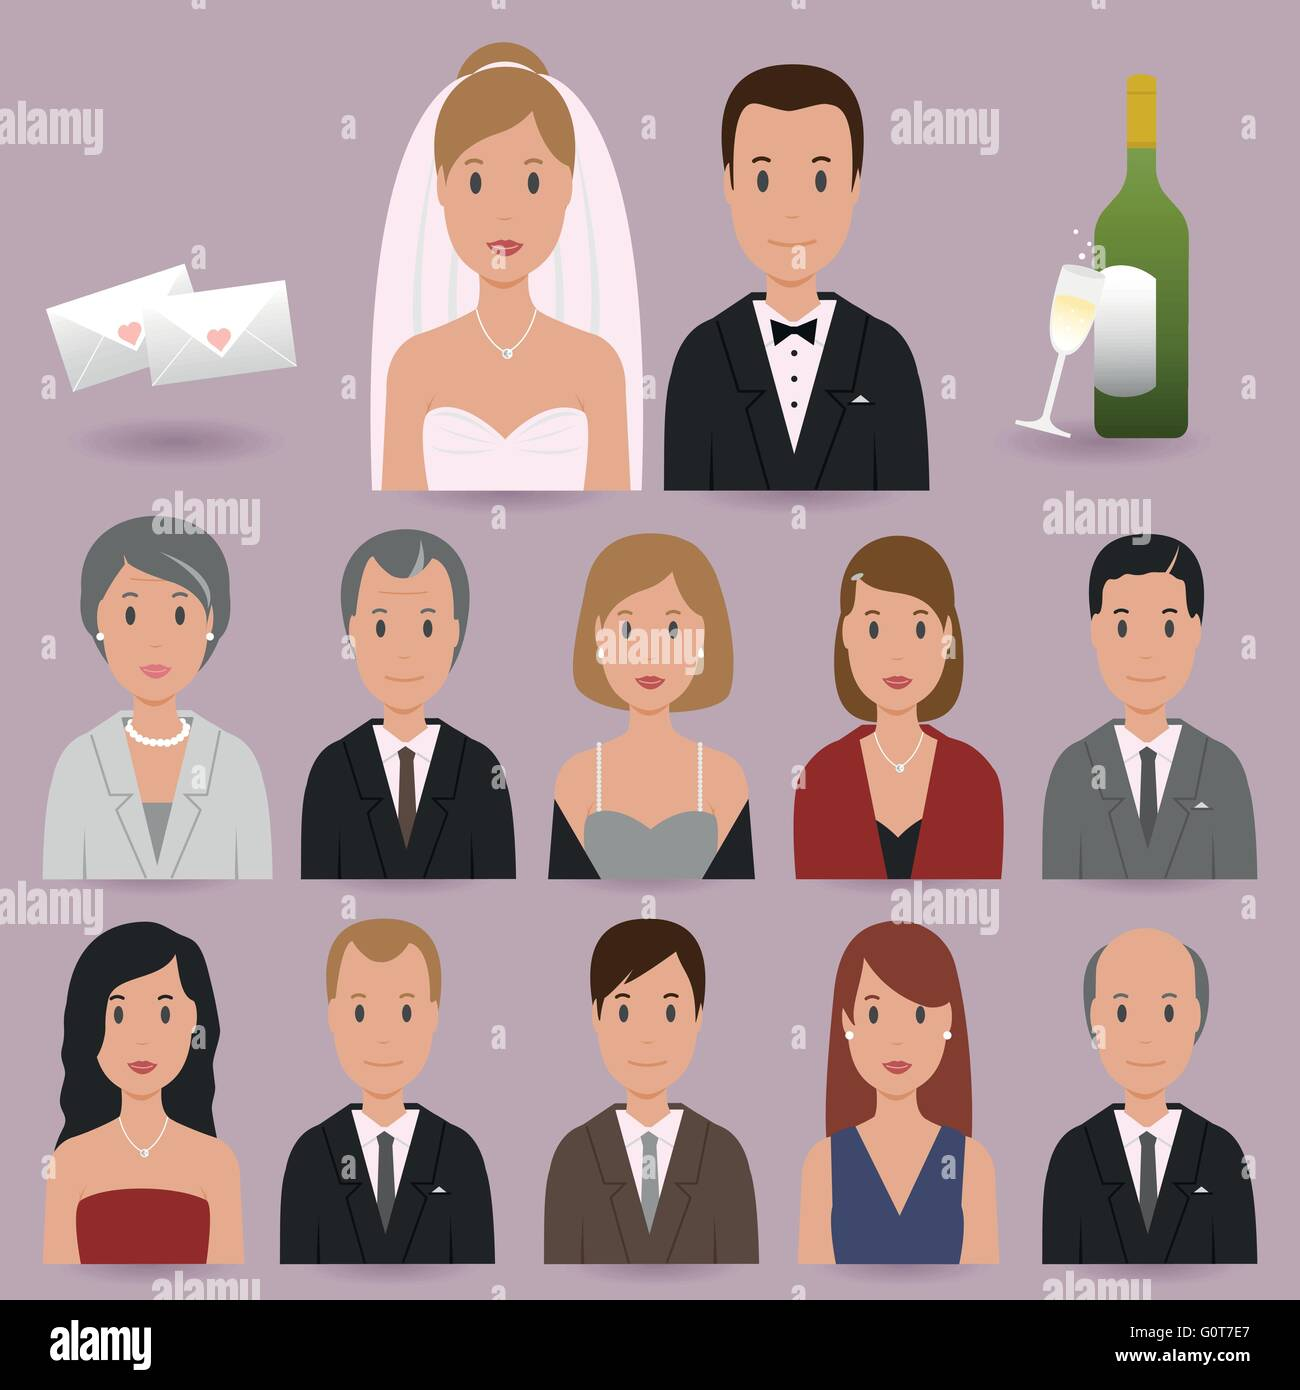 Bride, groom and wedding guests icons - Stock Vector